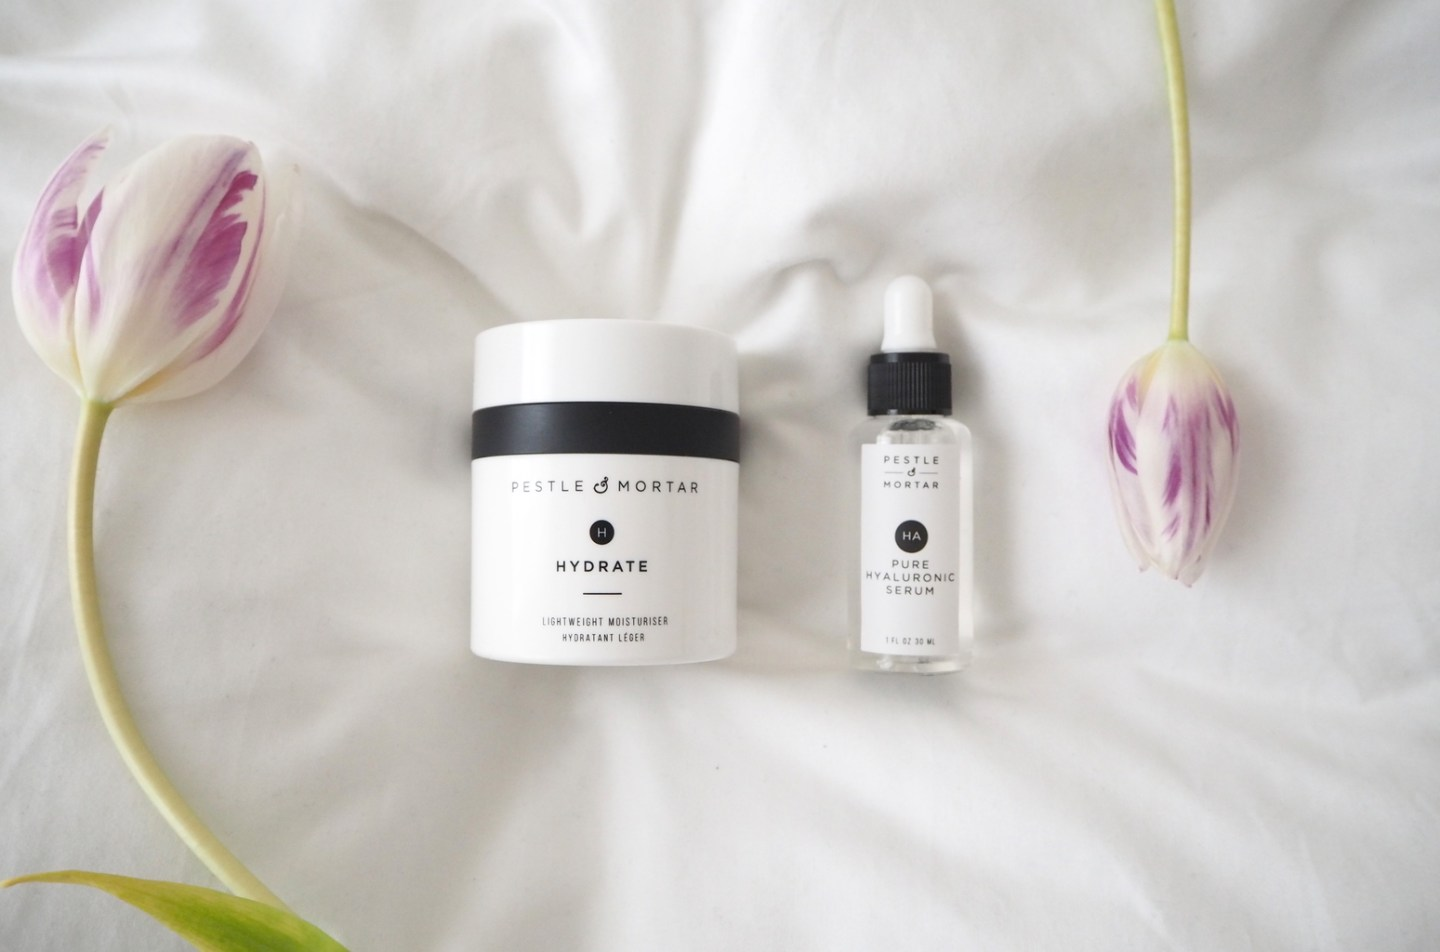 A FAB LIGHTWEIGHT SUMMER SKINCARE DUO FOR HYDRATION